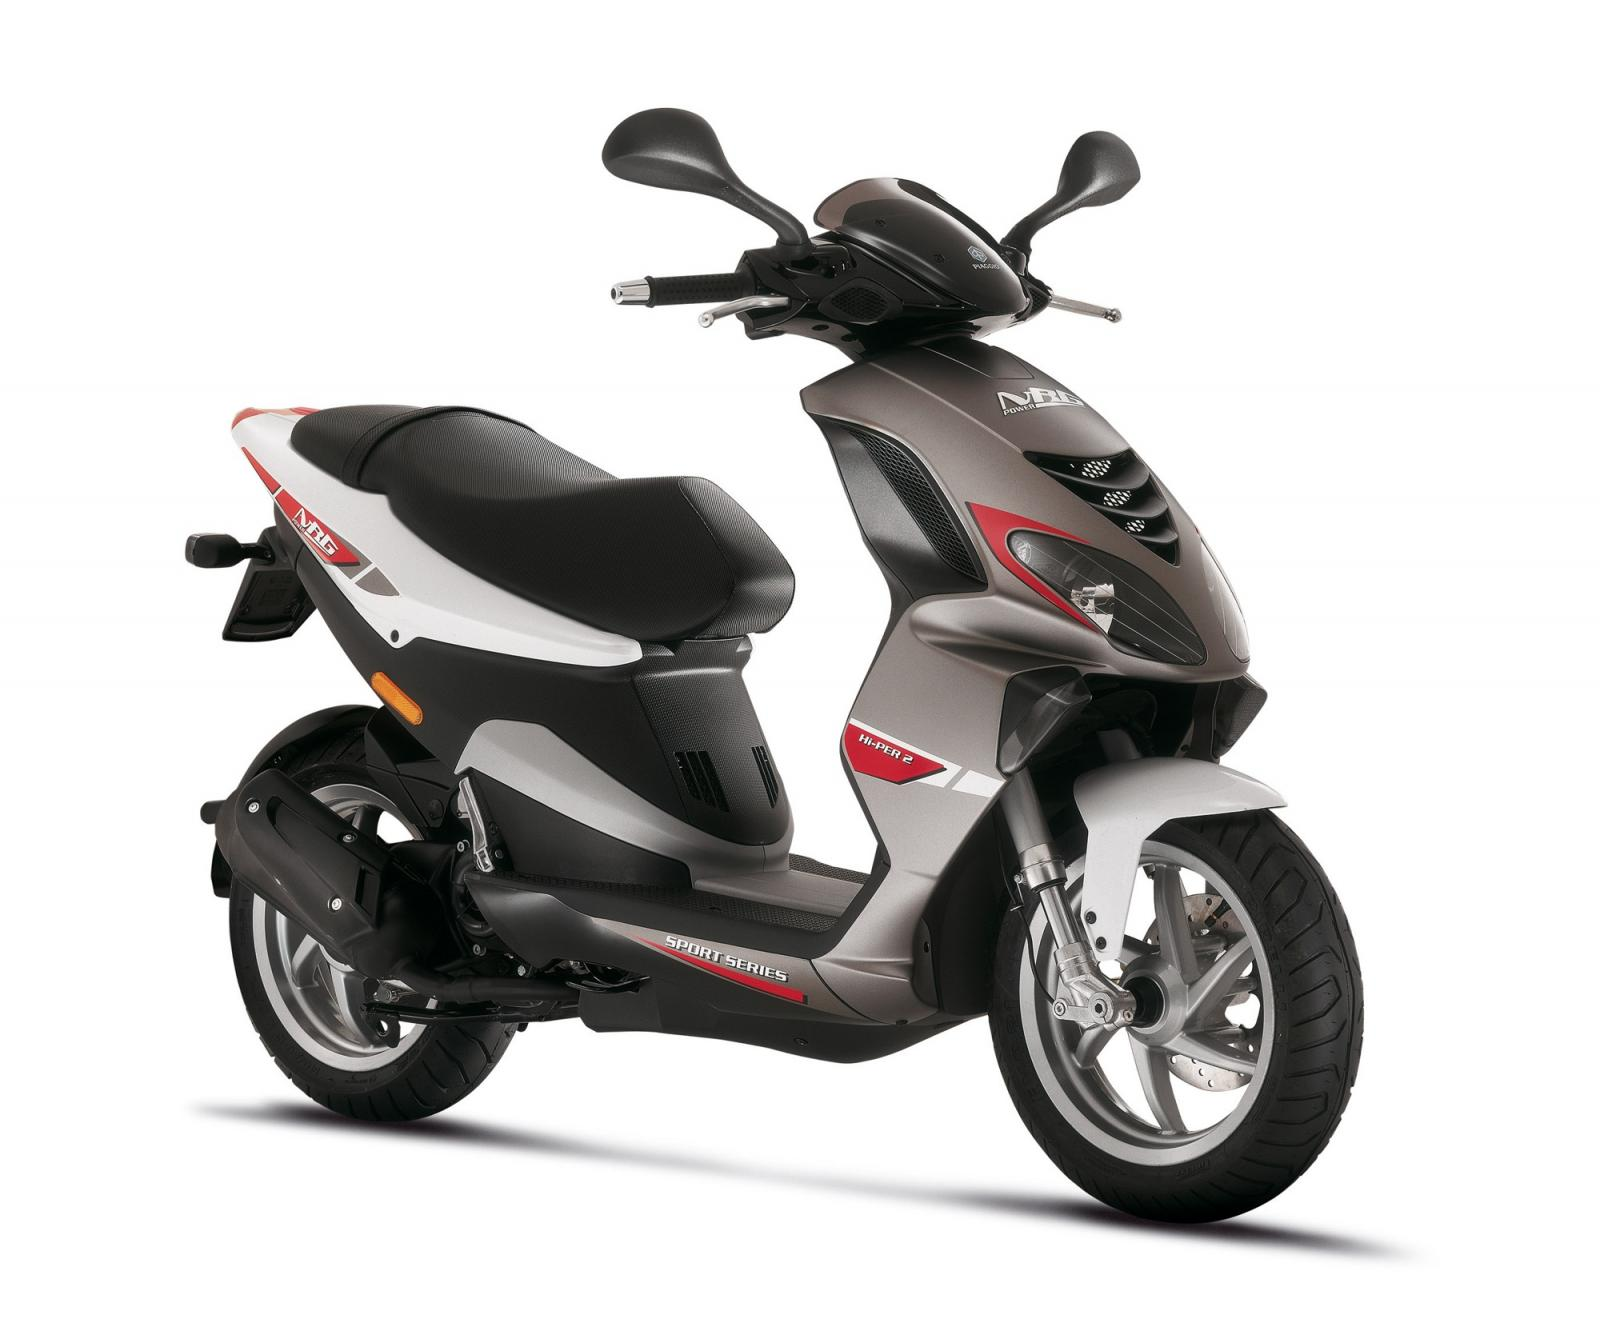 Piaggio nrg photo - 10